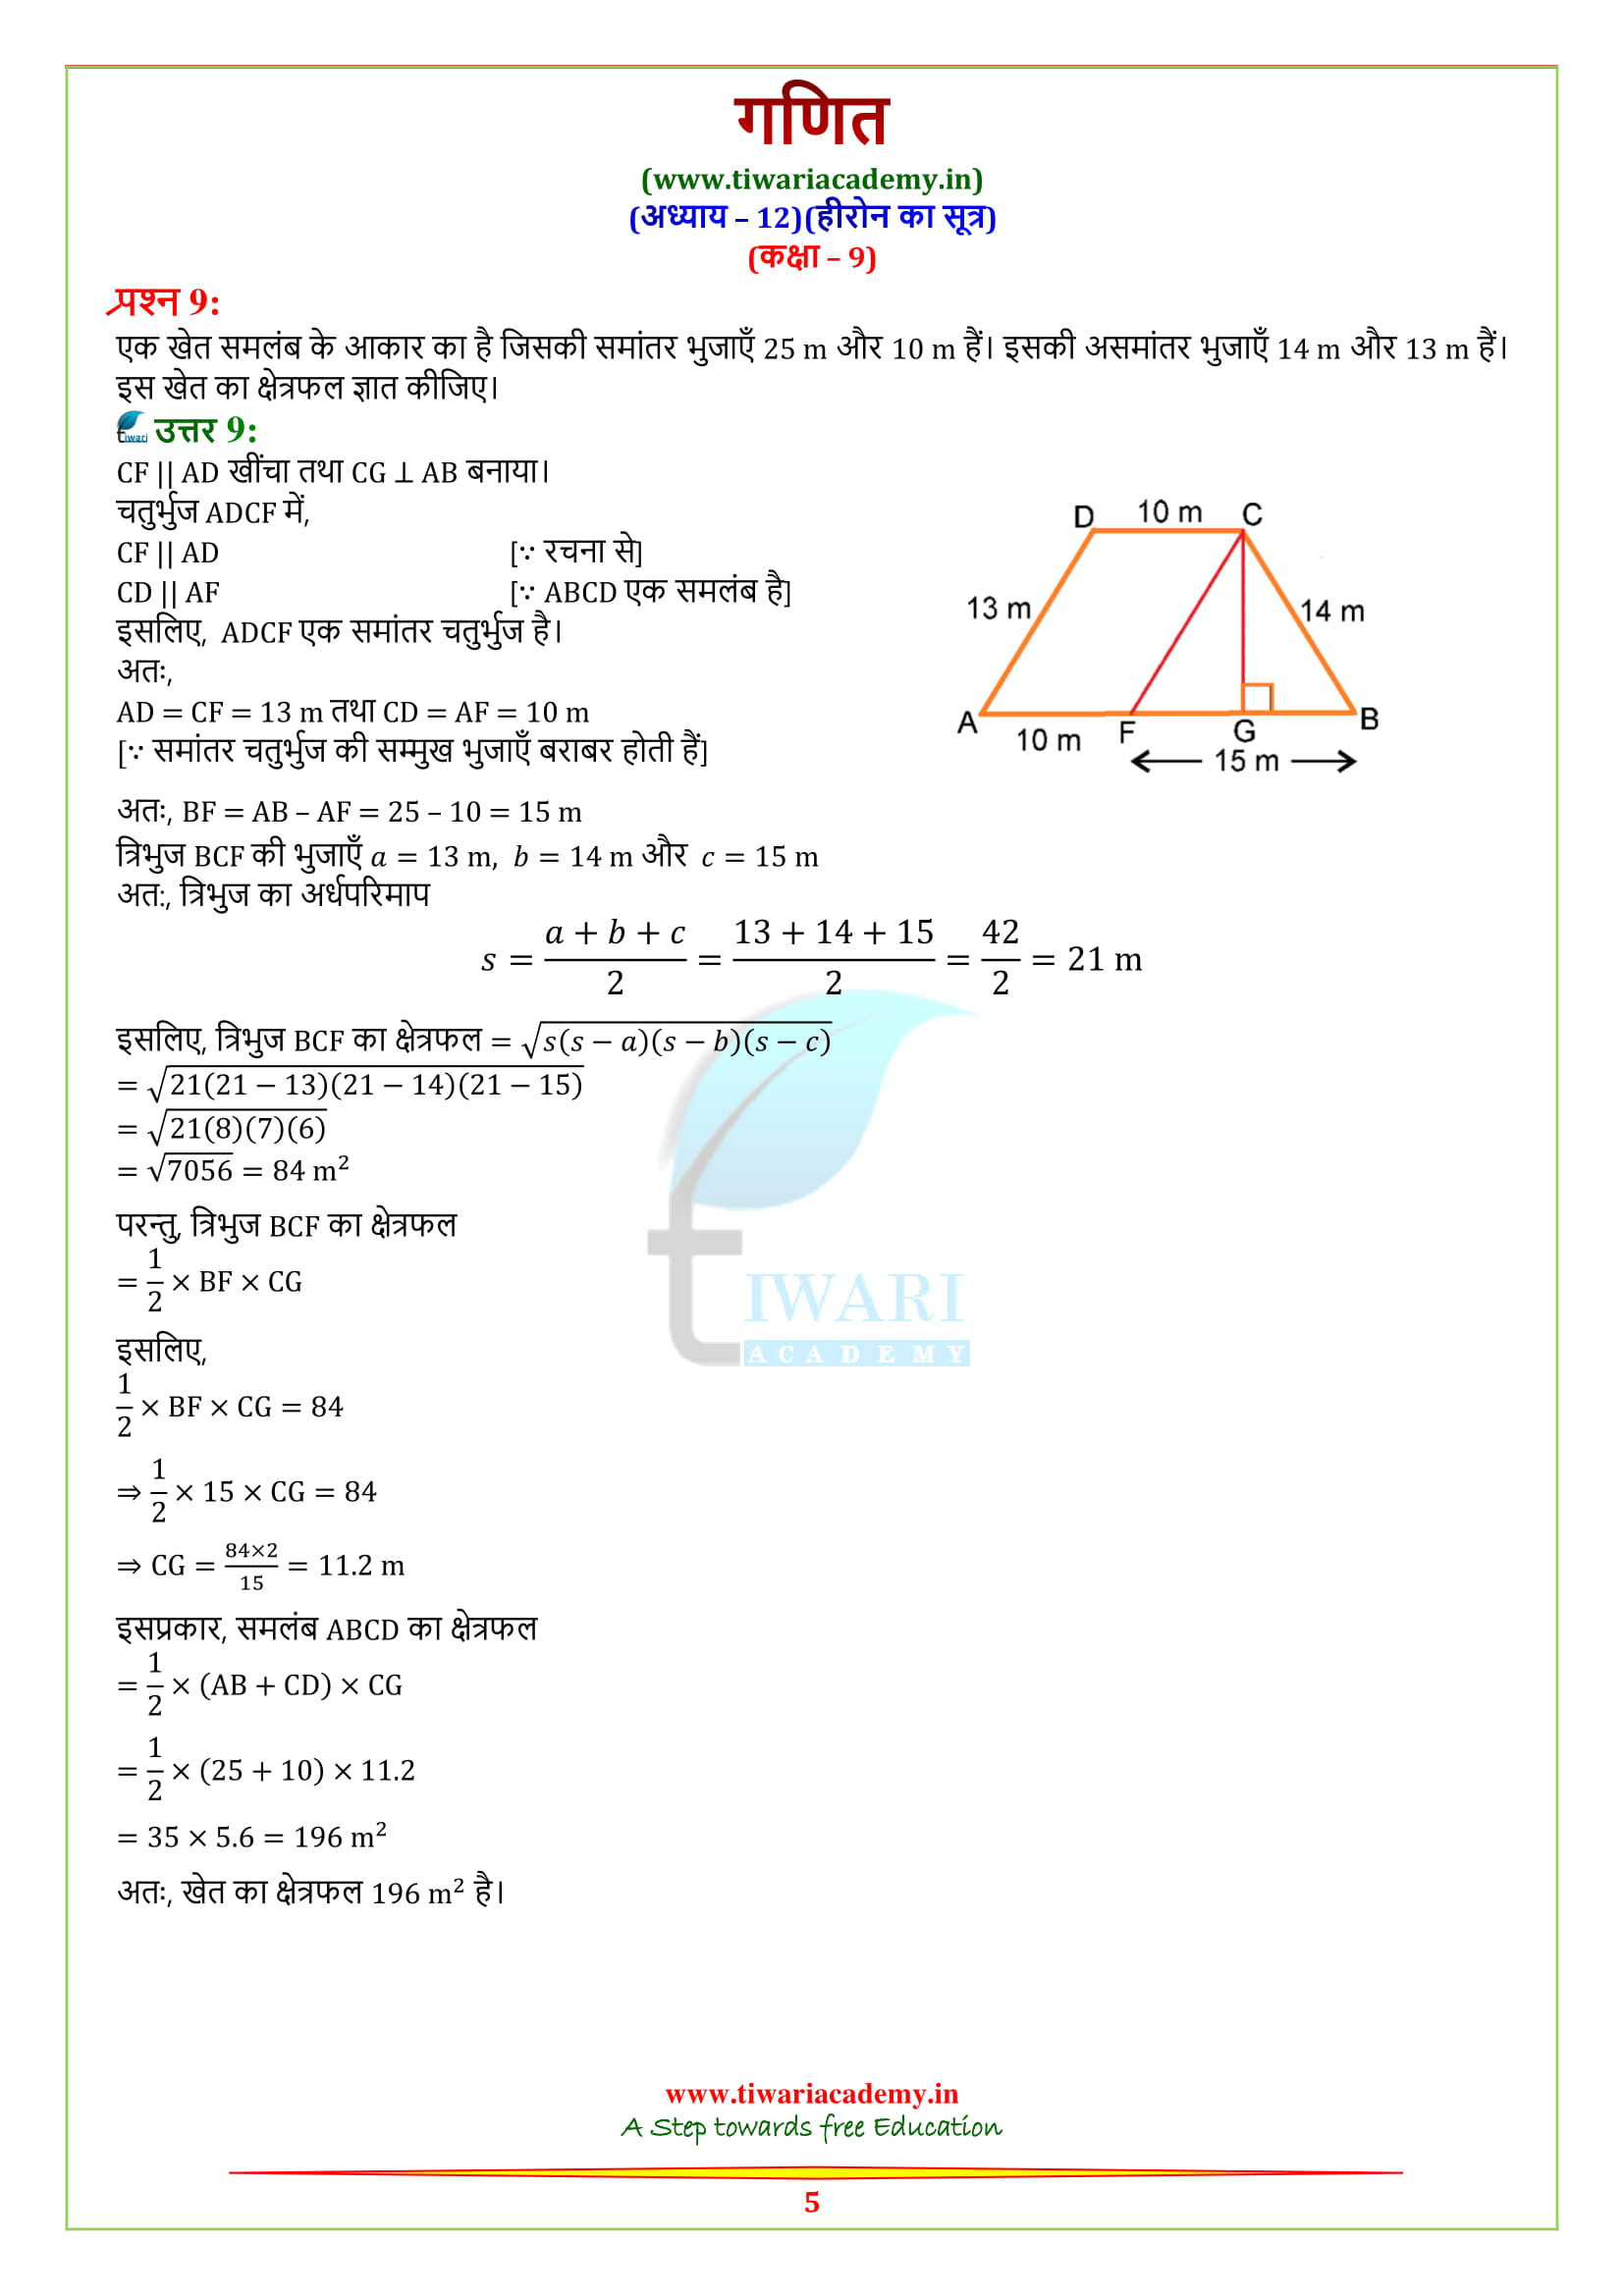 NCERT Solutions for class 9 Maths Exercise 12.2 all question in simplified way free.